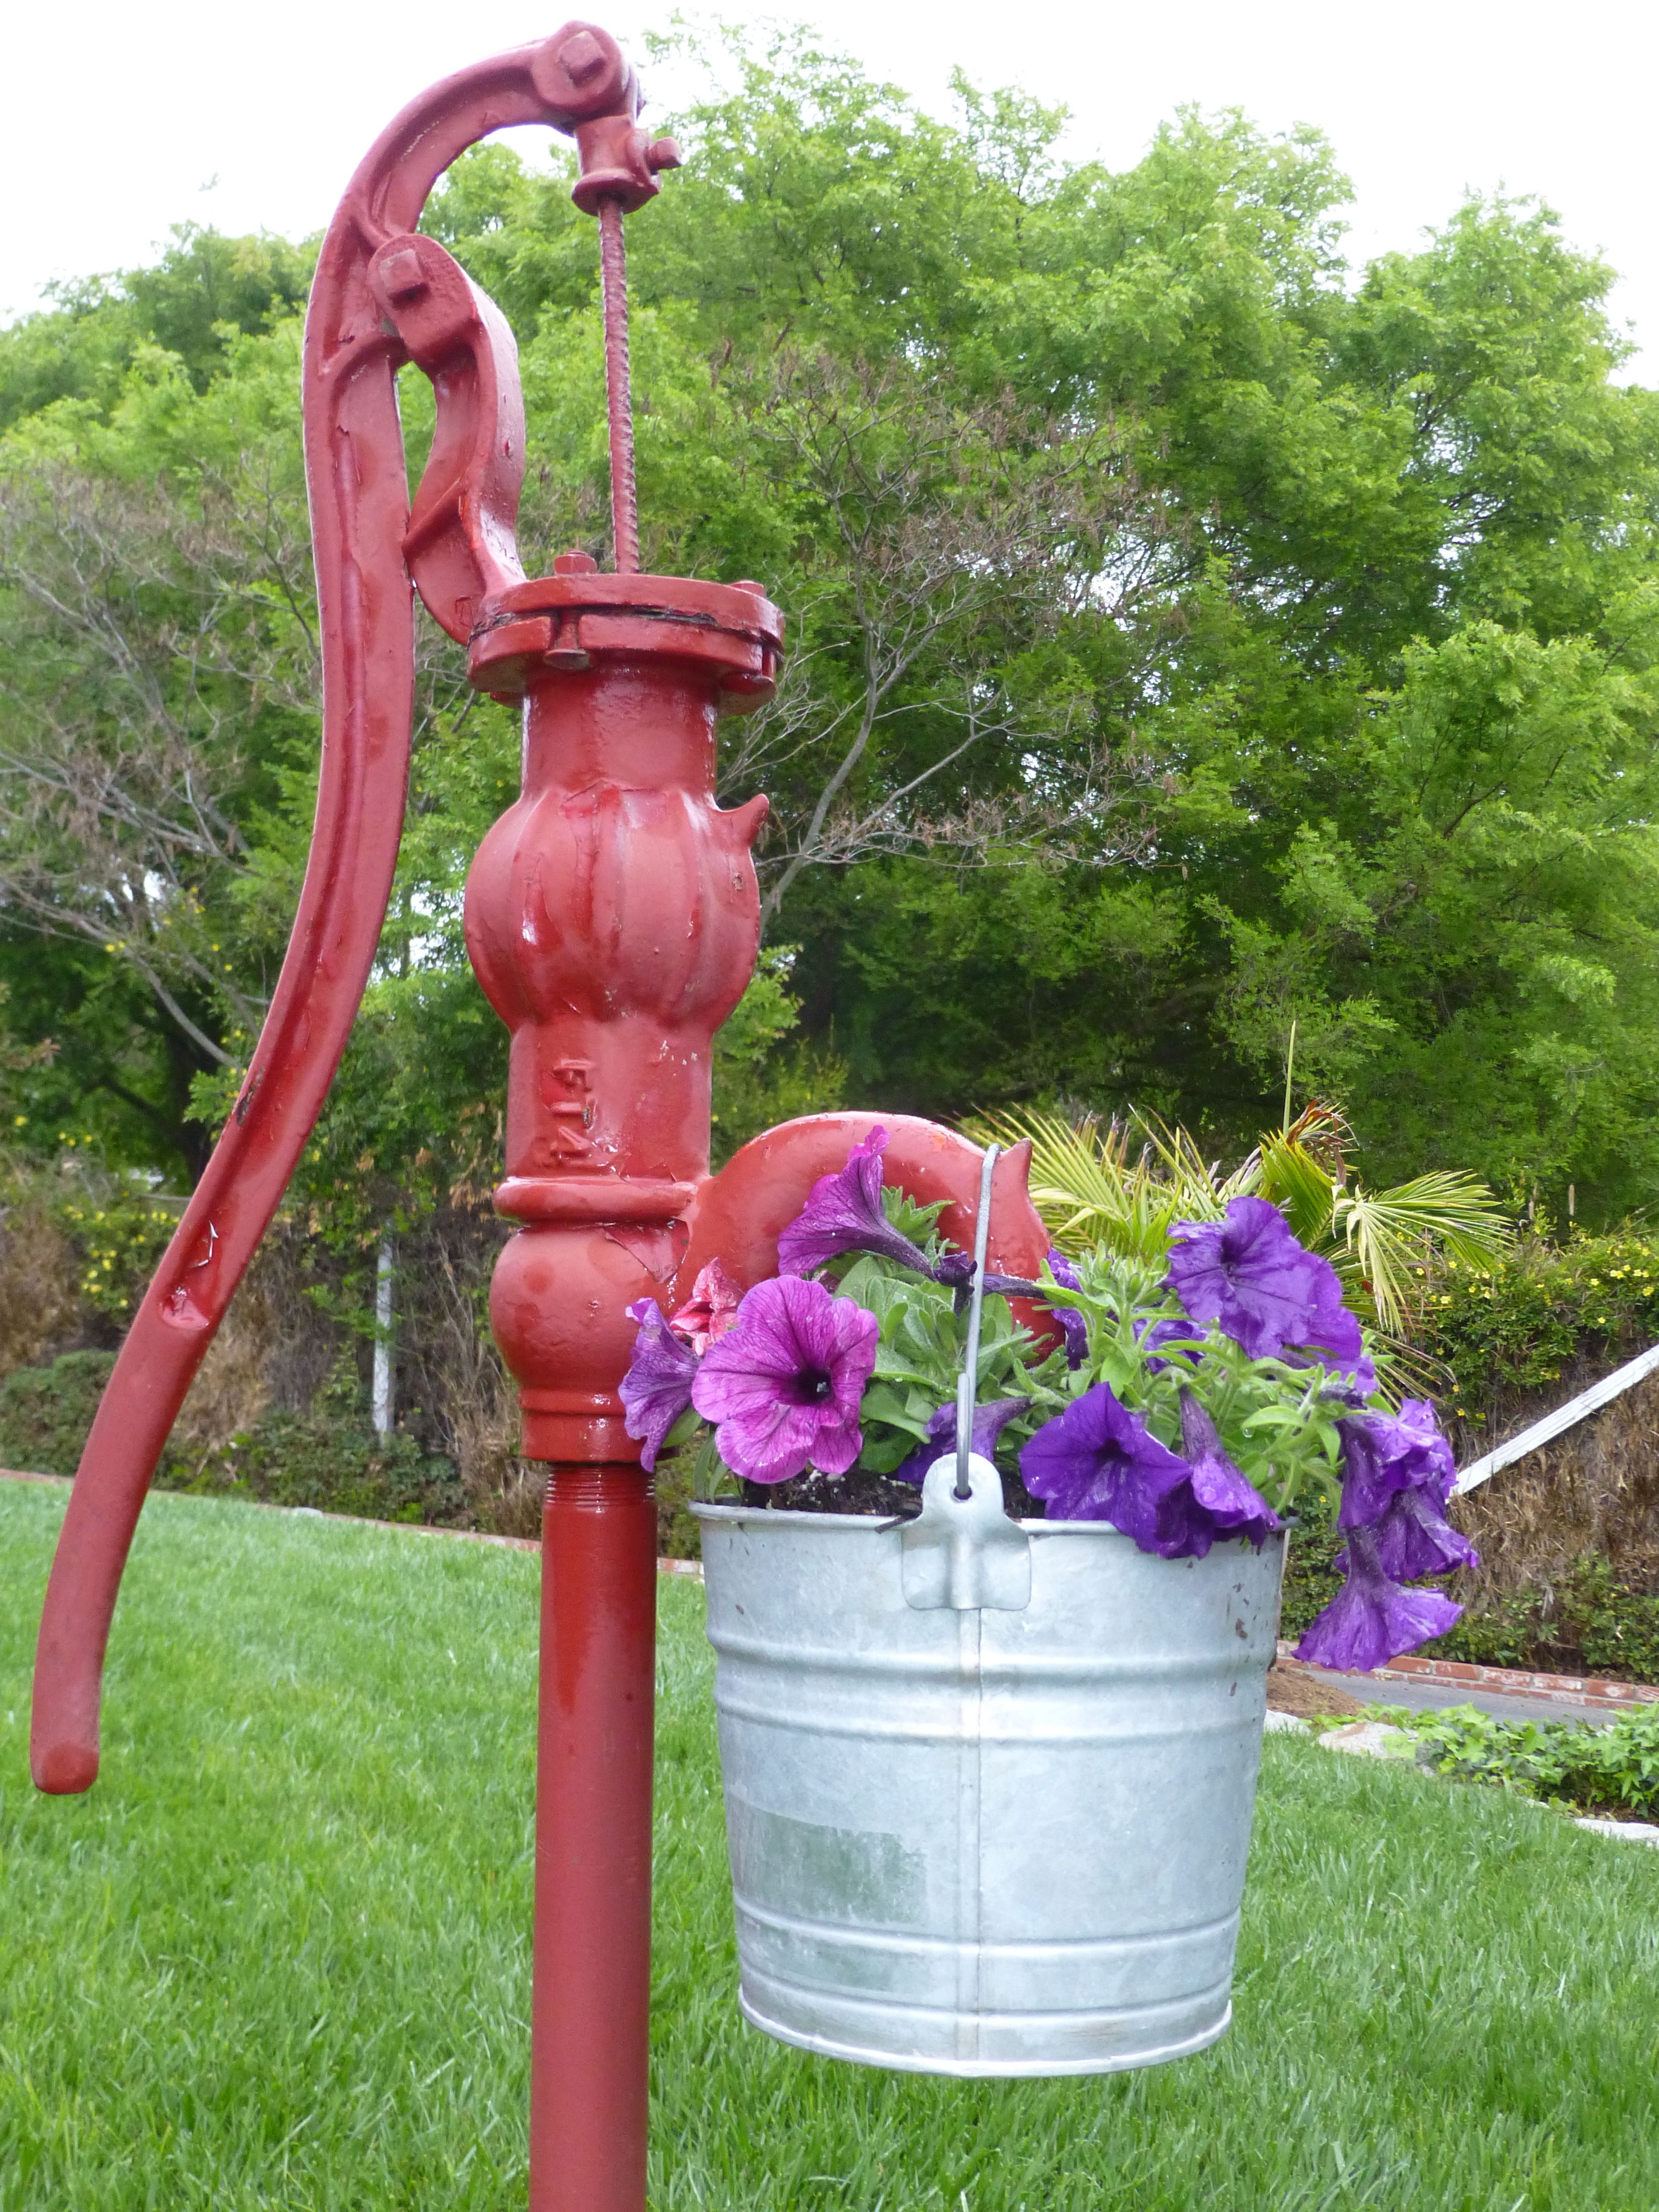 Gnome Garden: A Pail Of Petunias On The Old Water Pump.